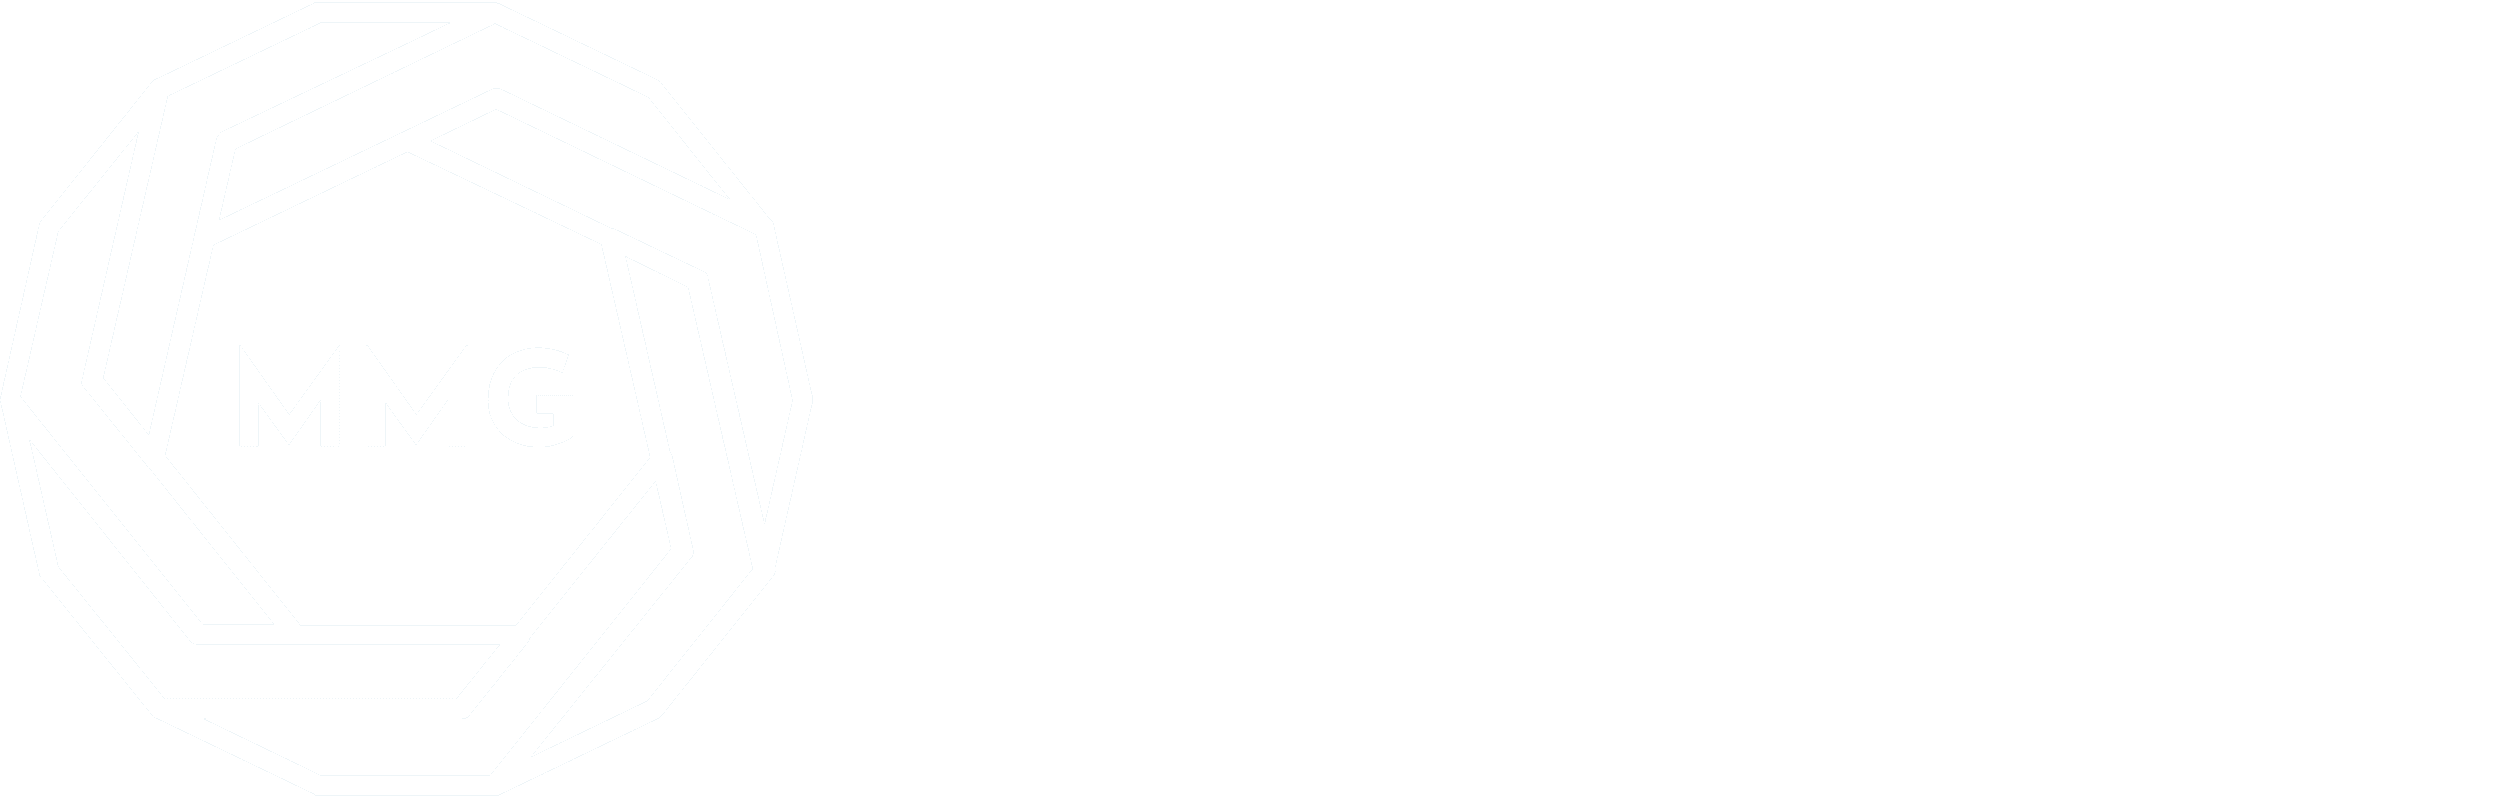 MMG Consulting